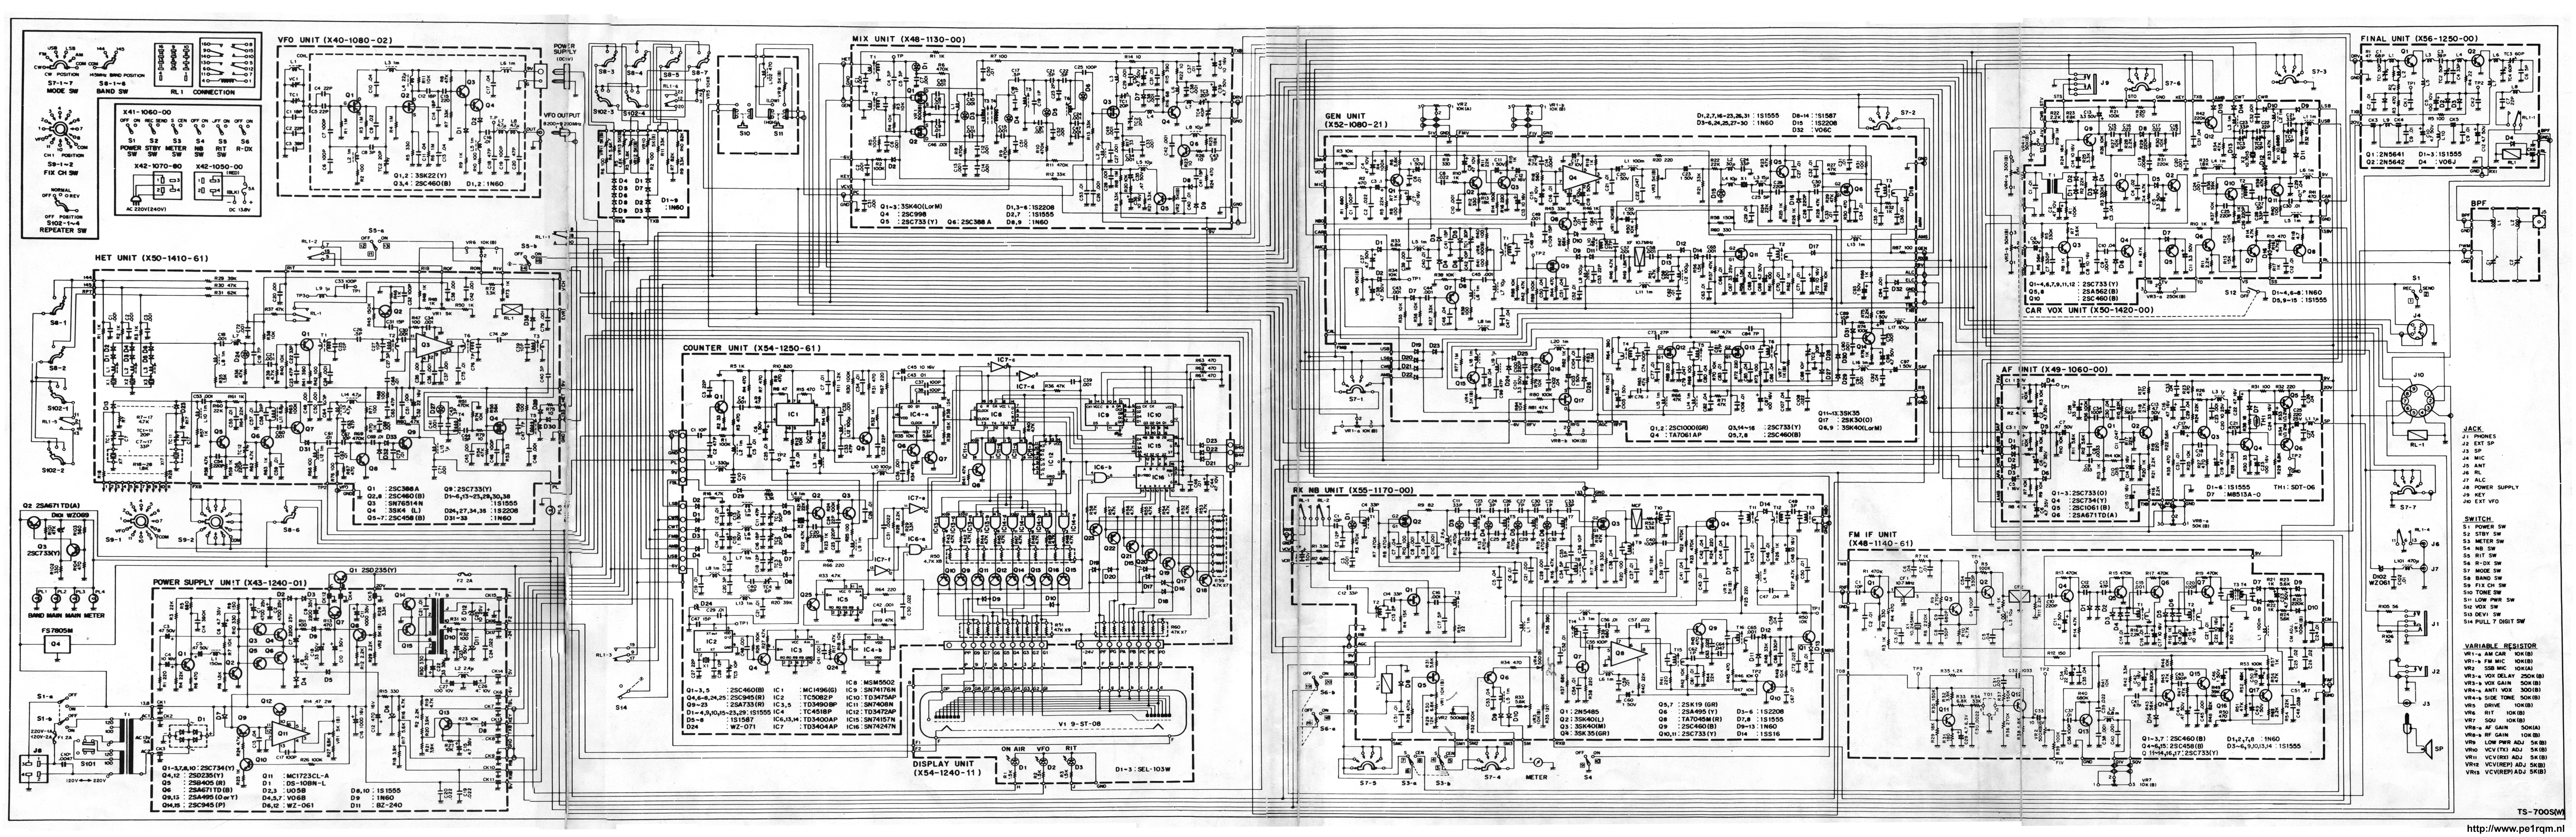 TS-700S schematic diagram.jpg